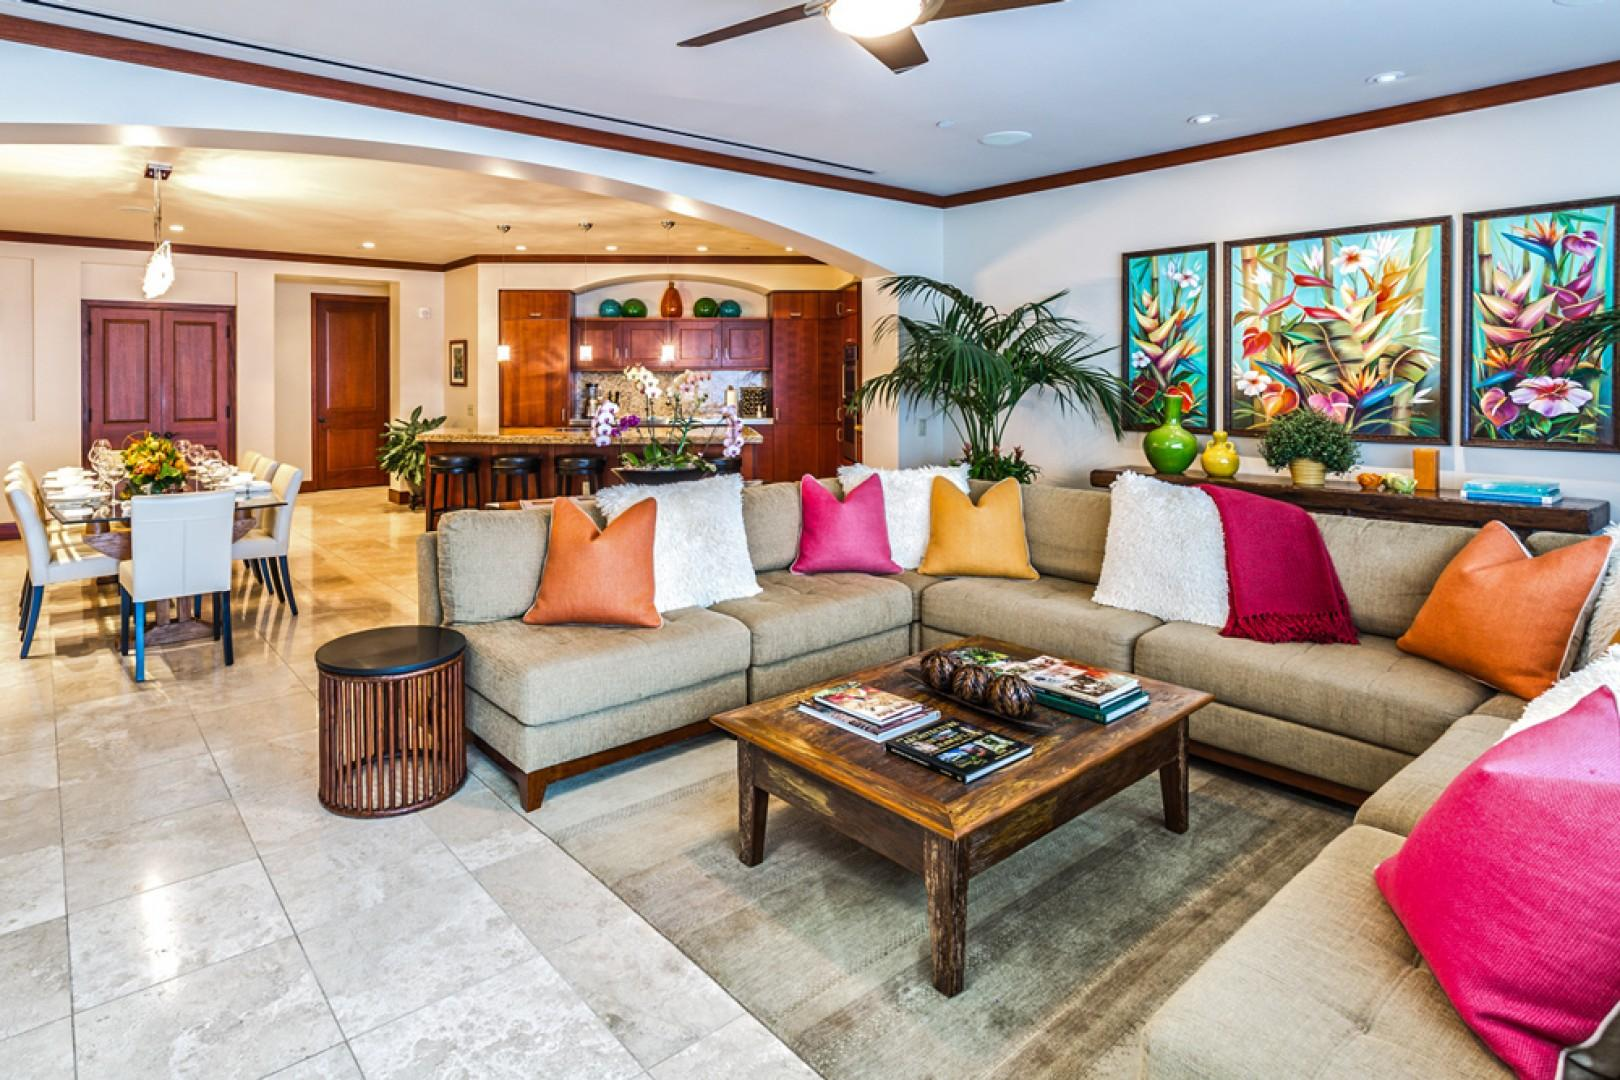 L509 Sandcastles Suite Spacious Great Room with Gourmet Kitchen with Five Bar Stools, Indoor Dining Table Seats Eight Guests and Large Ocean View Living Room